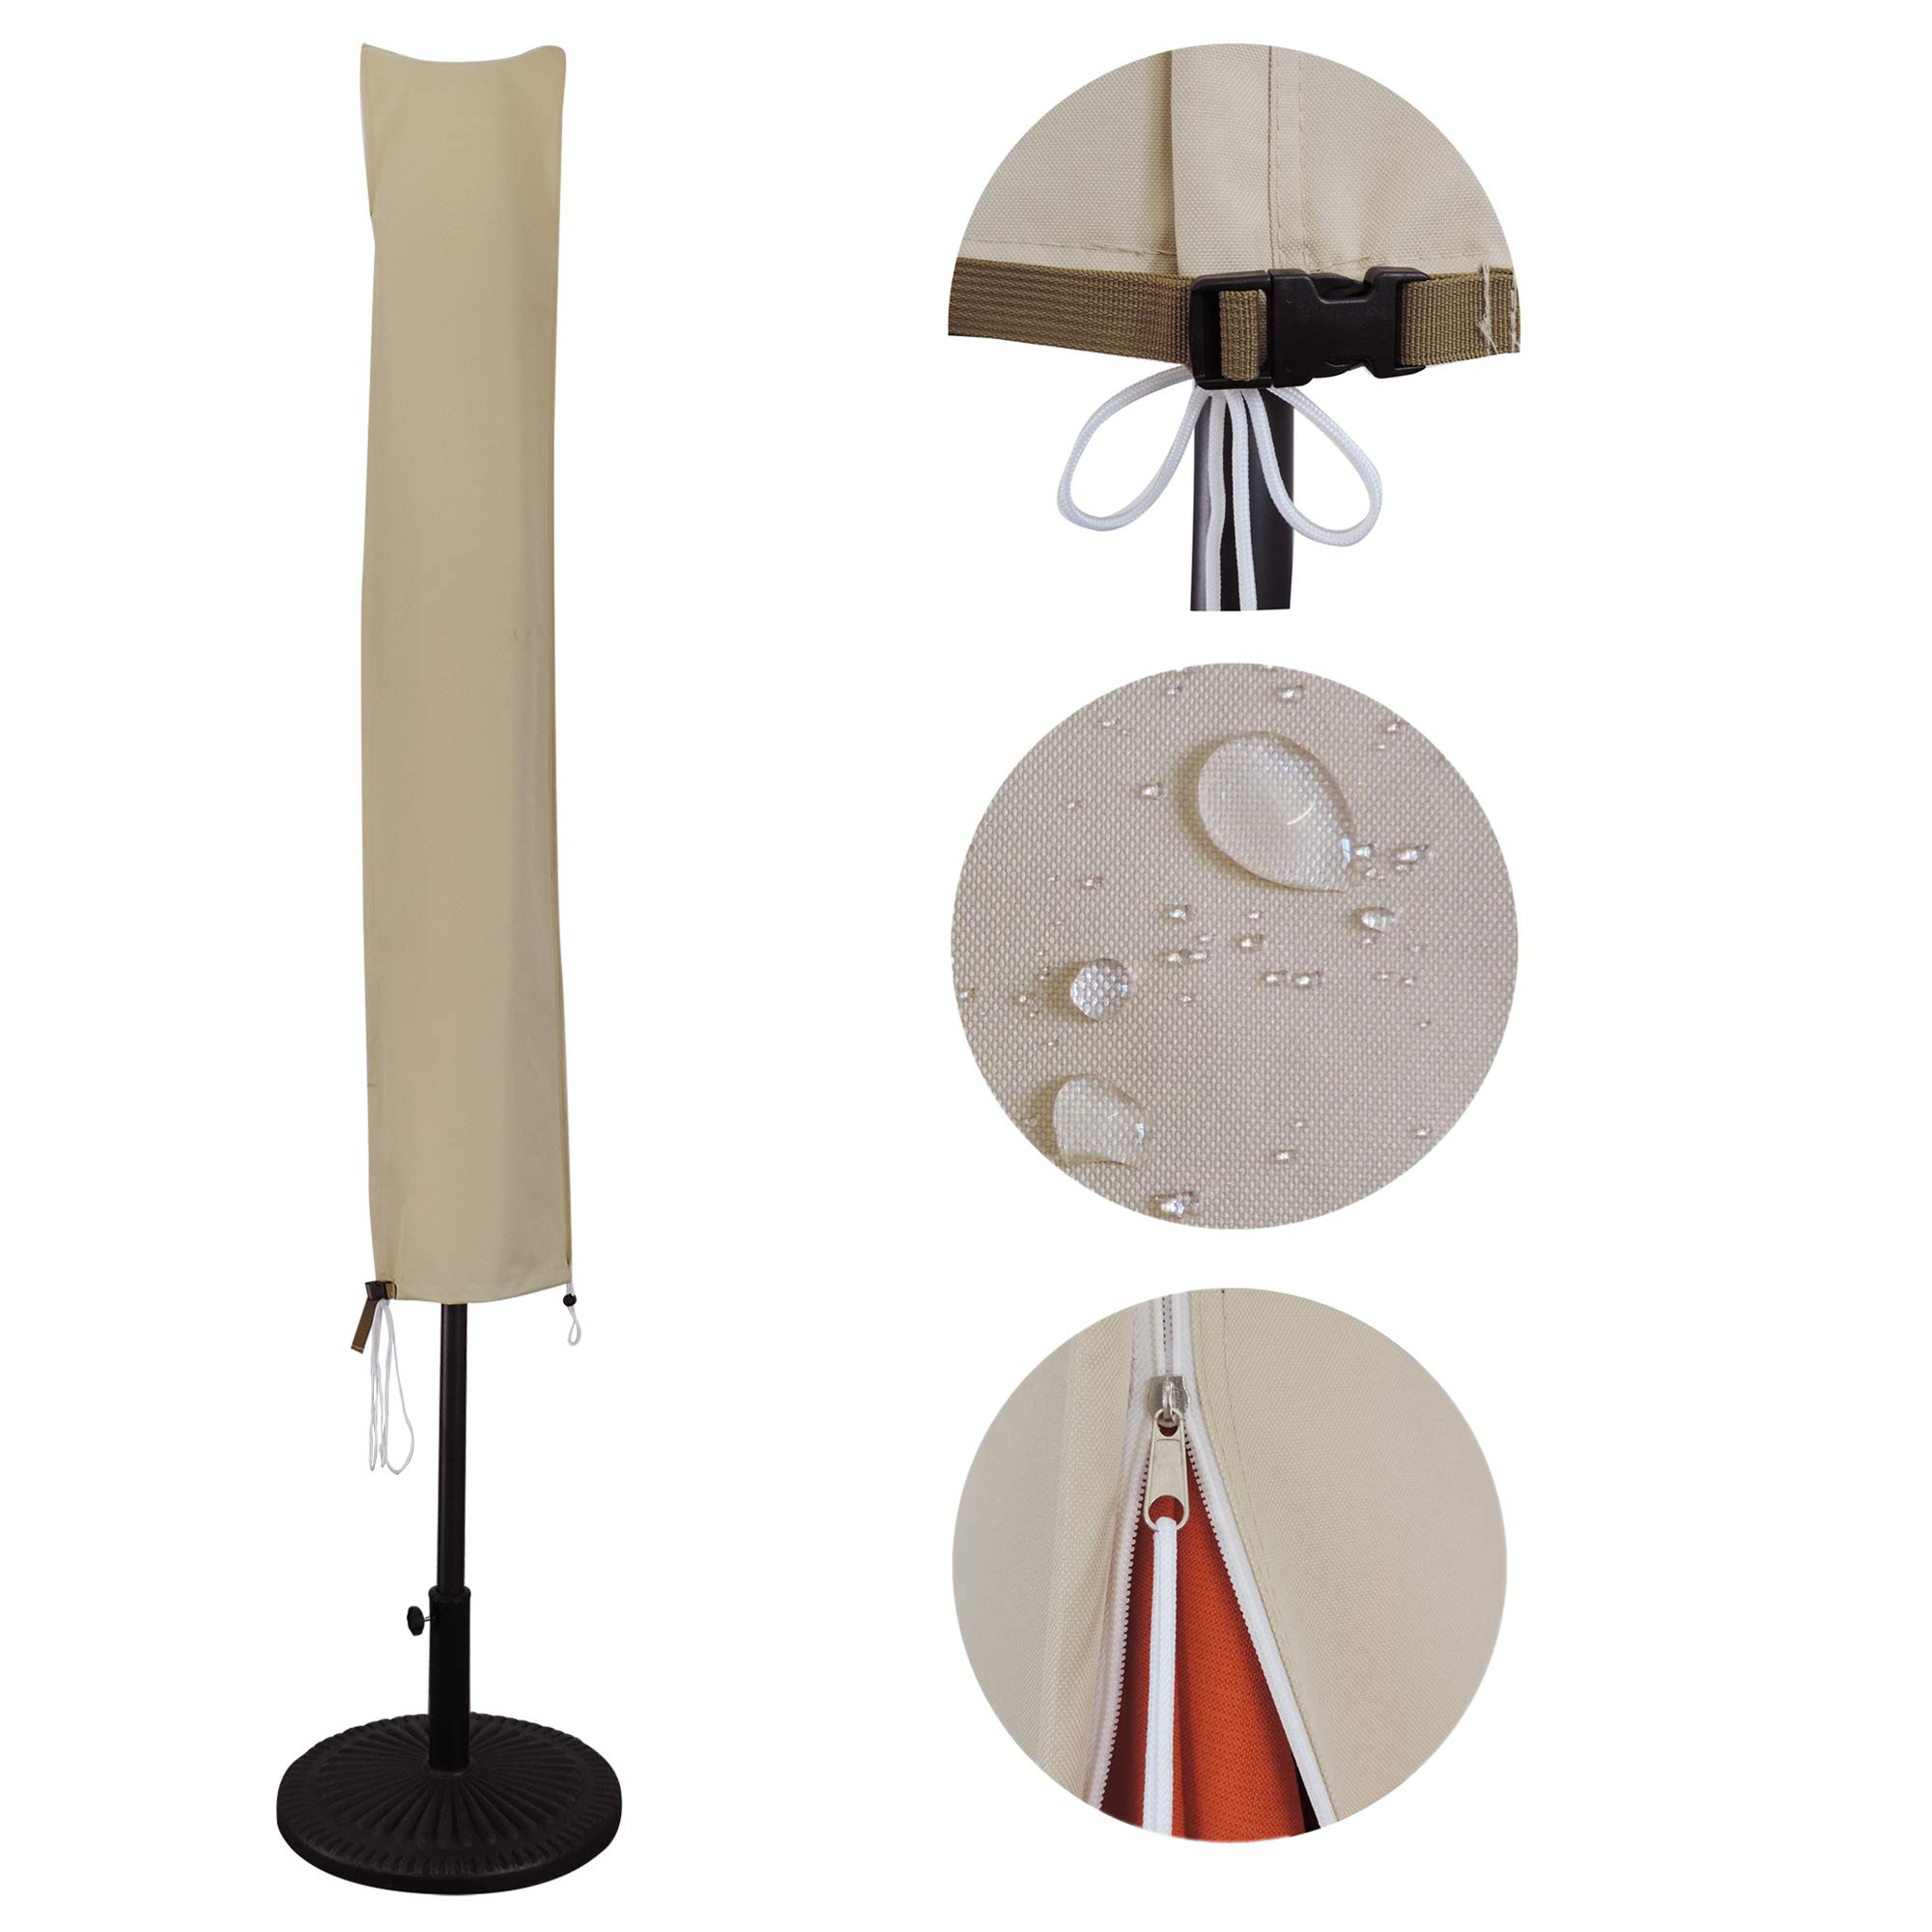 USspous Patio Umbrella Covers with Zipper and Support Rod Parasol Covers for 7FT to - 11FT Umbrellas, Oxford Fabric Water Resistant, Outdoor Waterproof - Beige